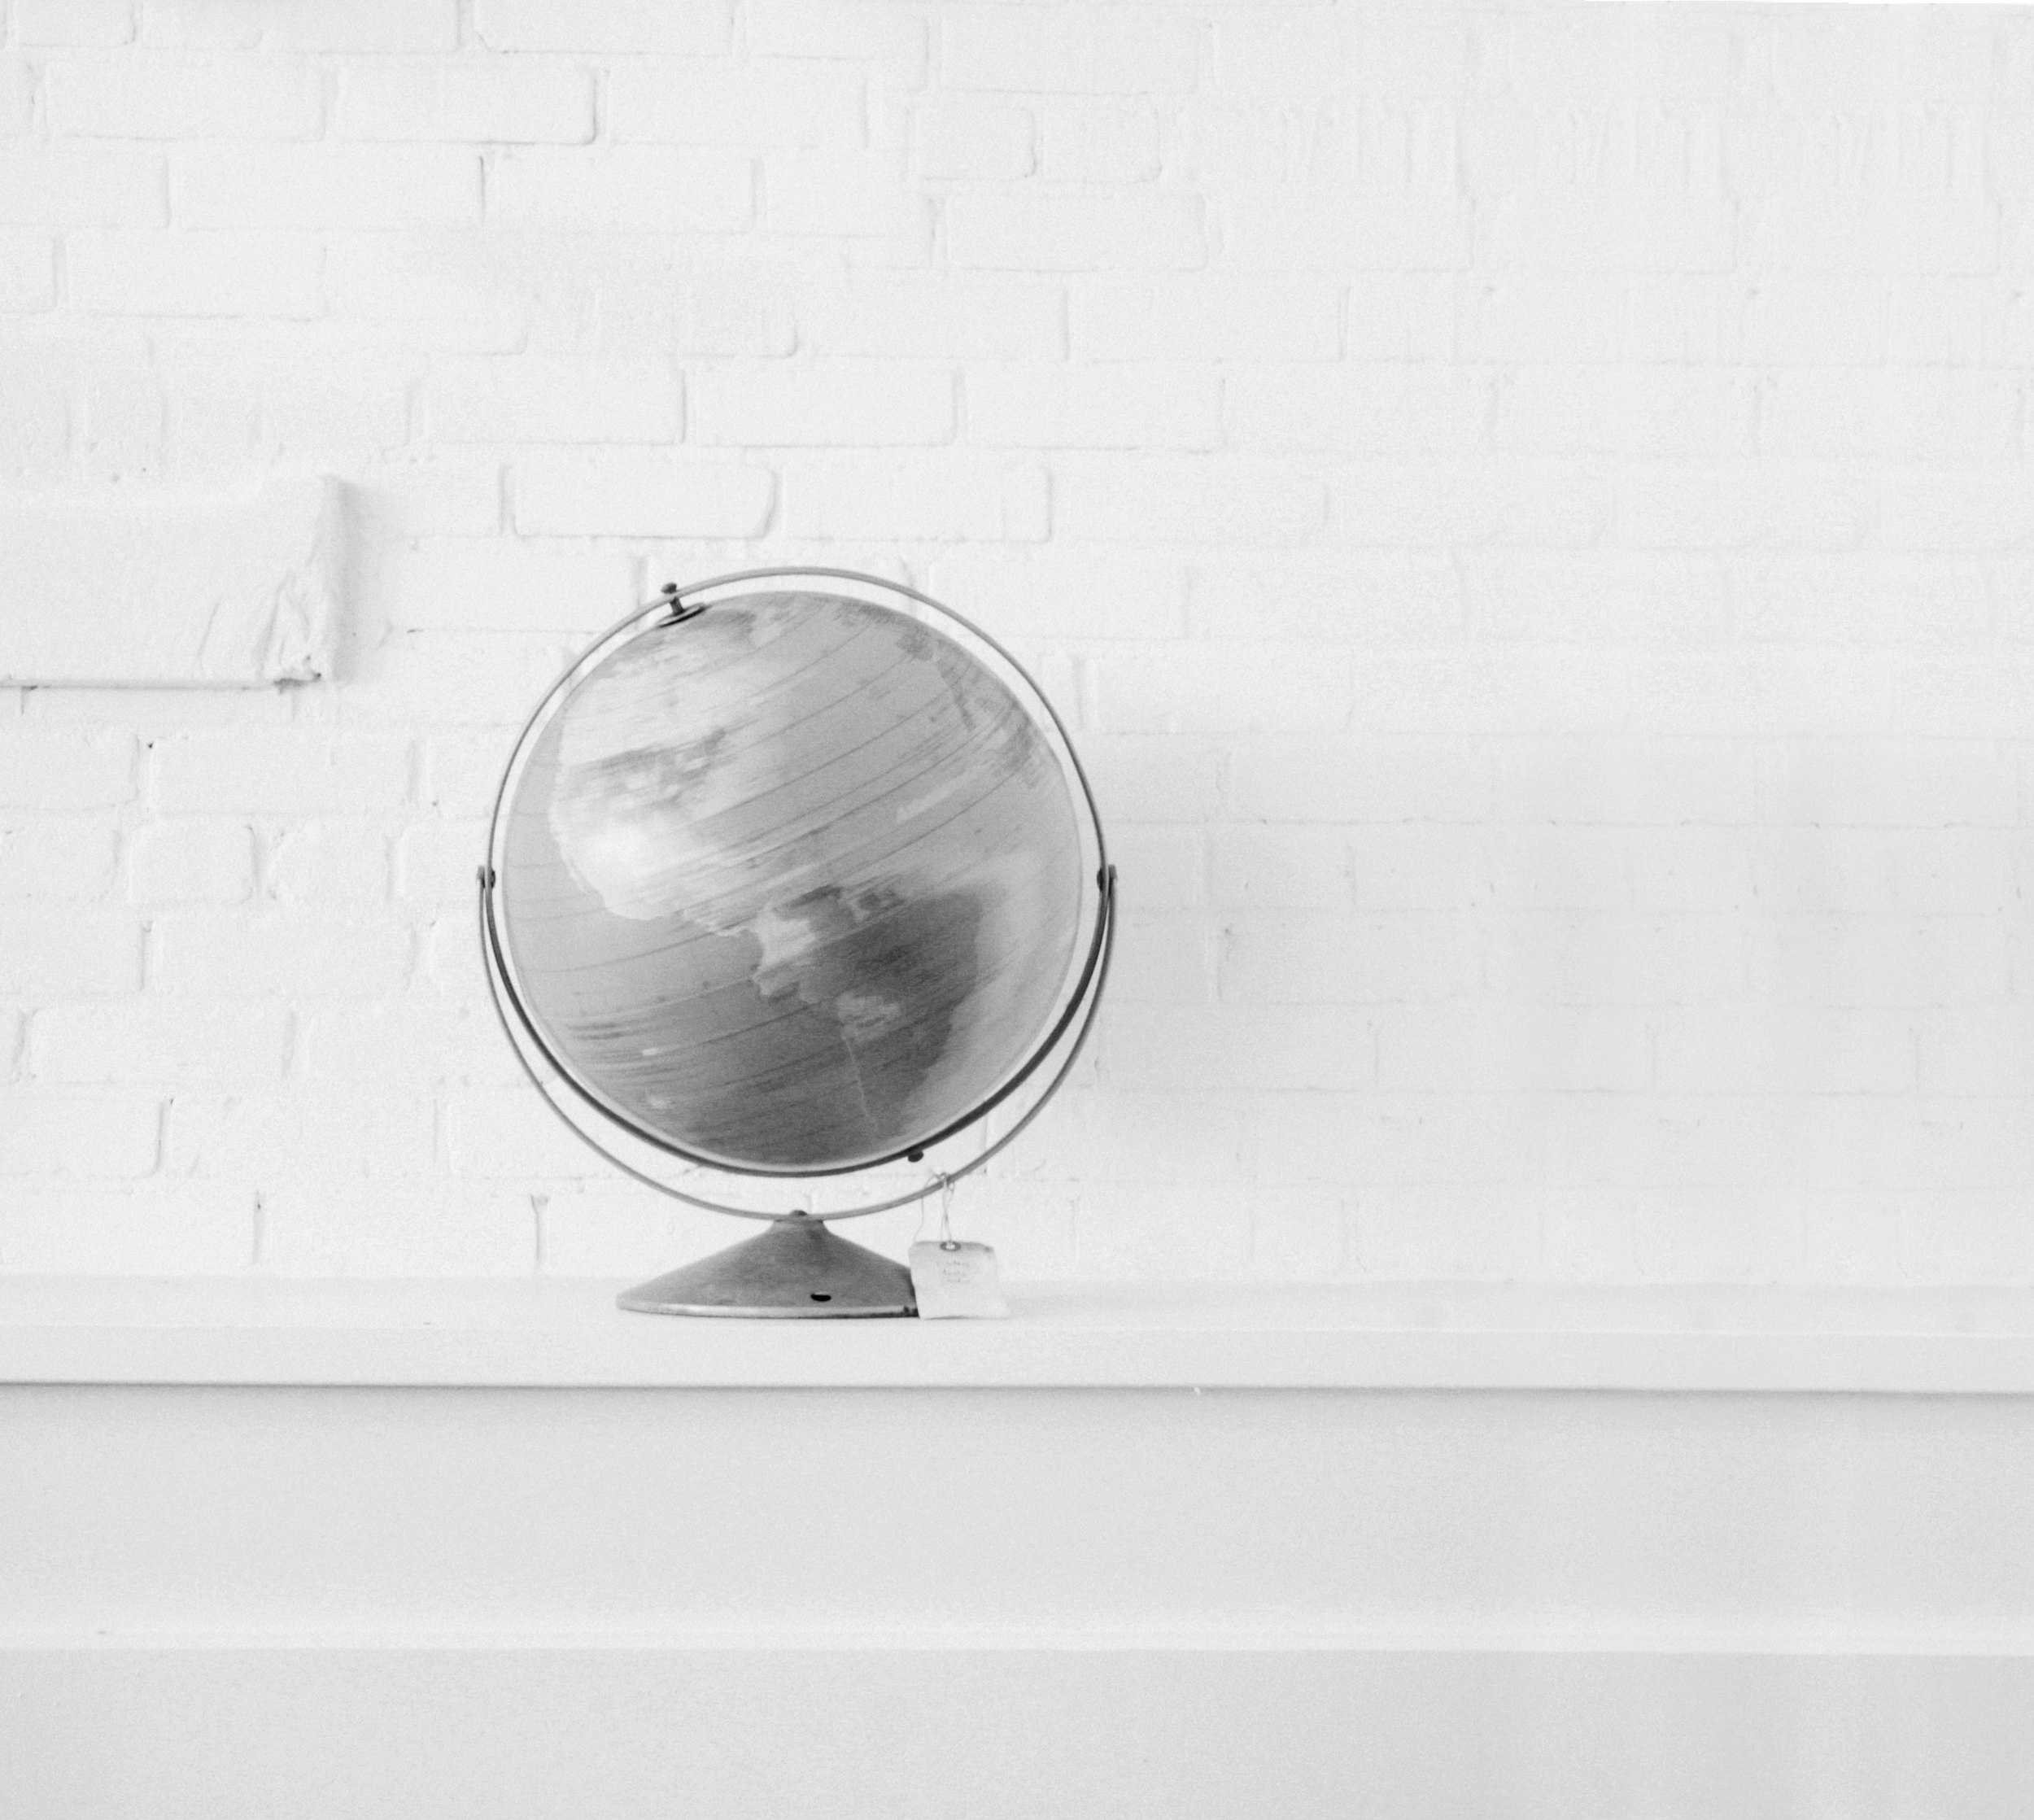 A spinning globe on a white shelf on a white brick wall